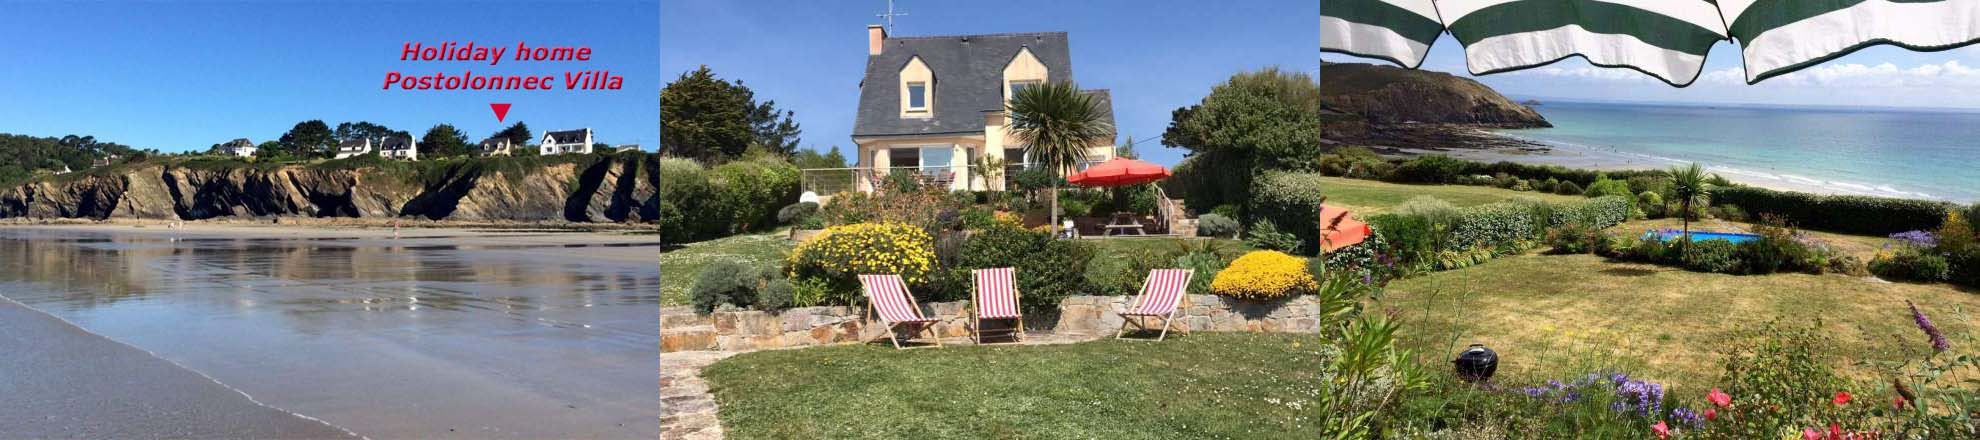 Brittany Holiday-home: Postolonnec Villa on the Crozon peninsula